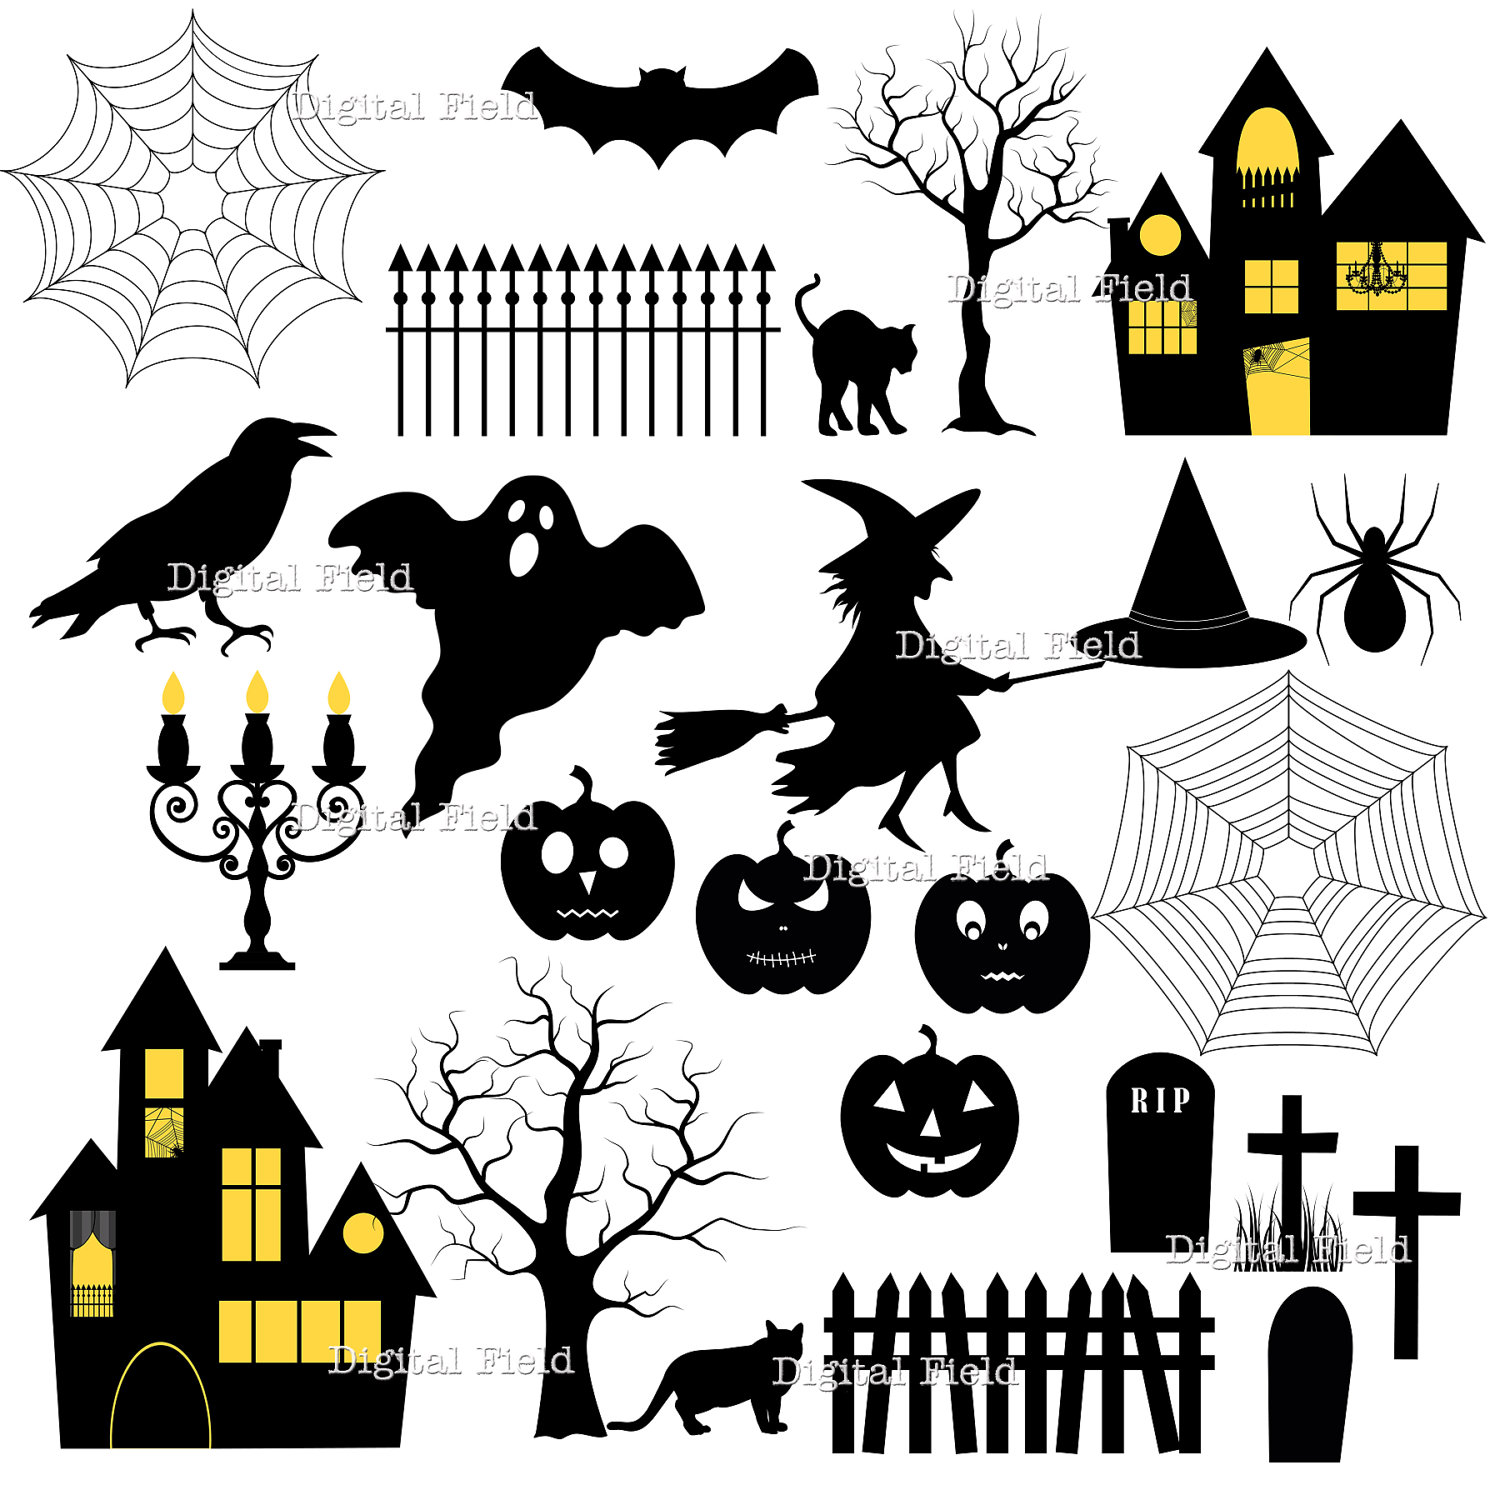 Printable Tree House Plans: Halloween Silhouette Clip Art Set Halloween Printable